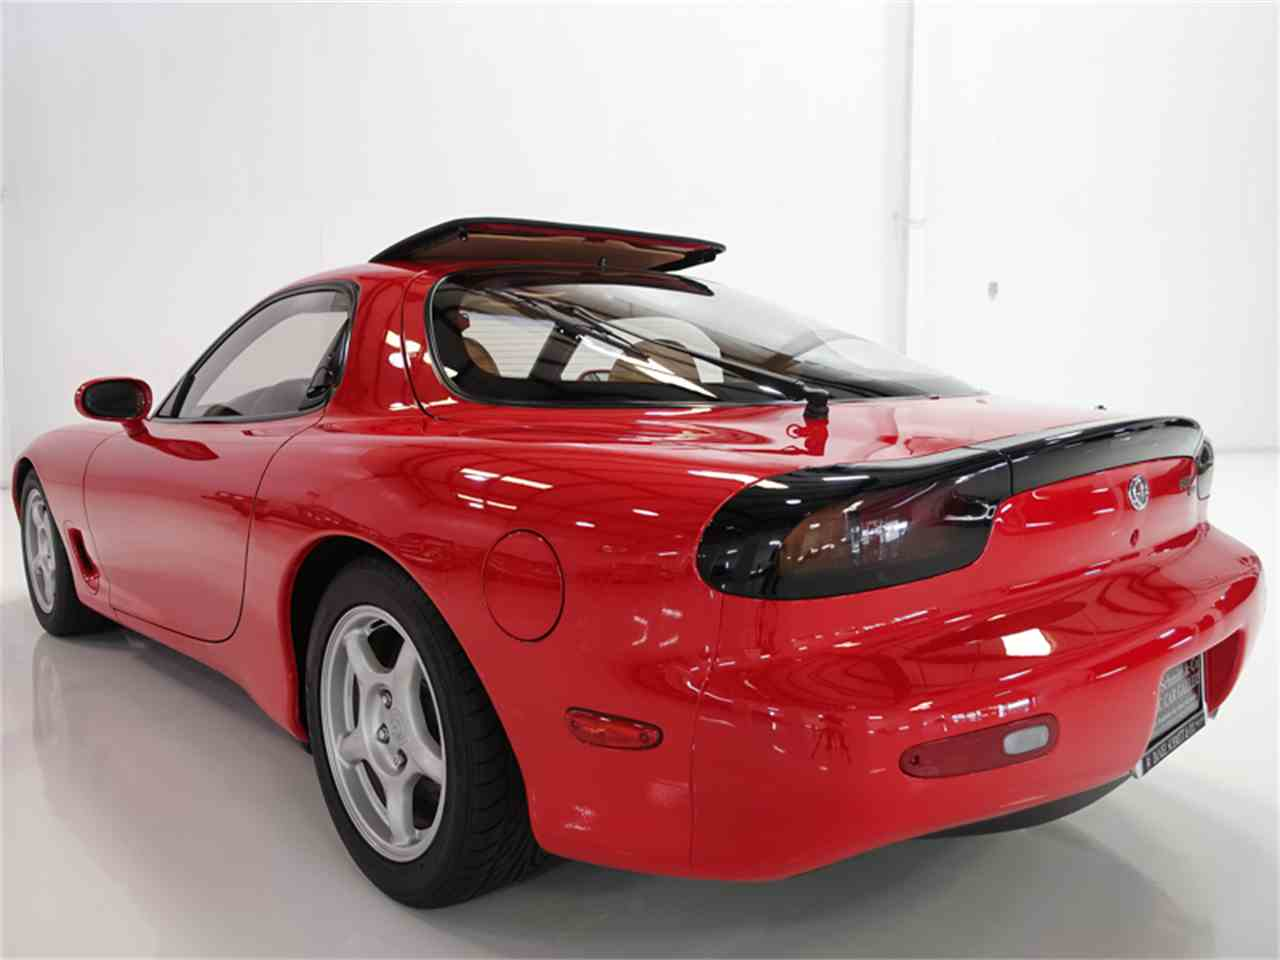 Large Picture of '93 RX-7 located in Missouri Offered by Daniel Schmitt & Co. - LVIB